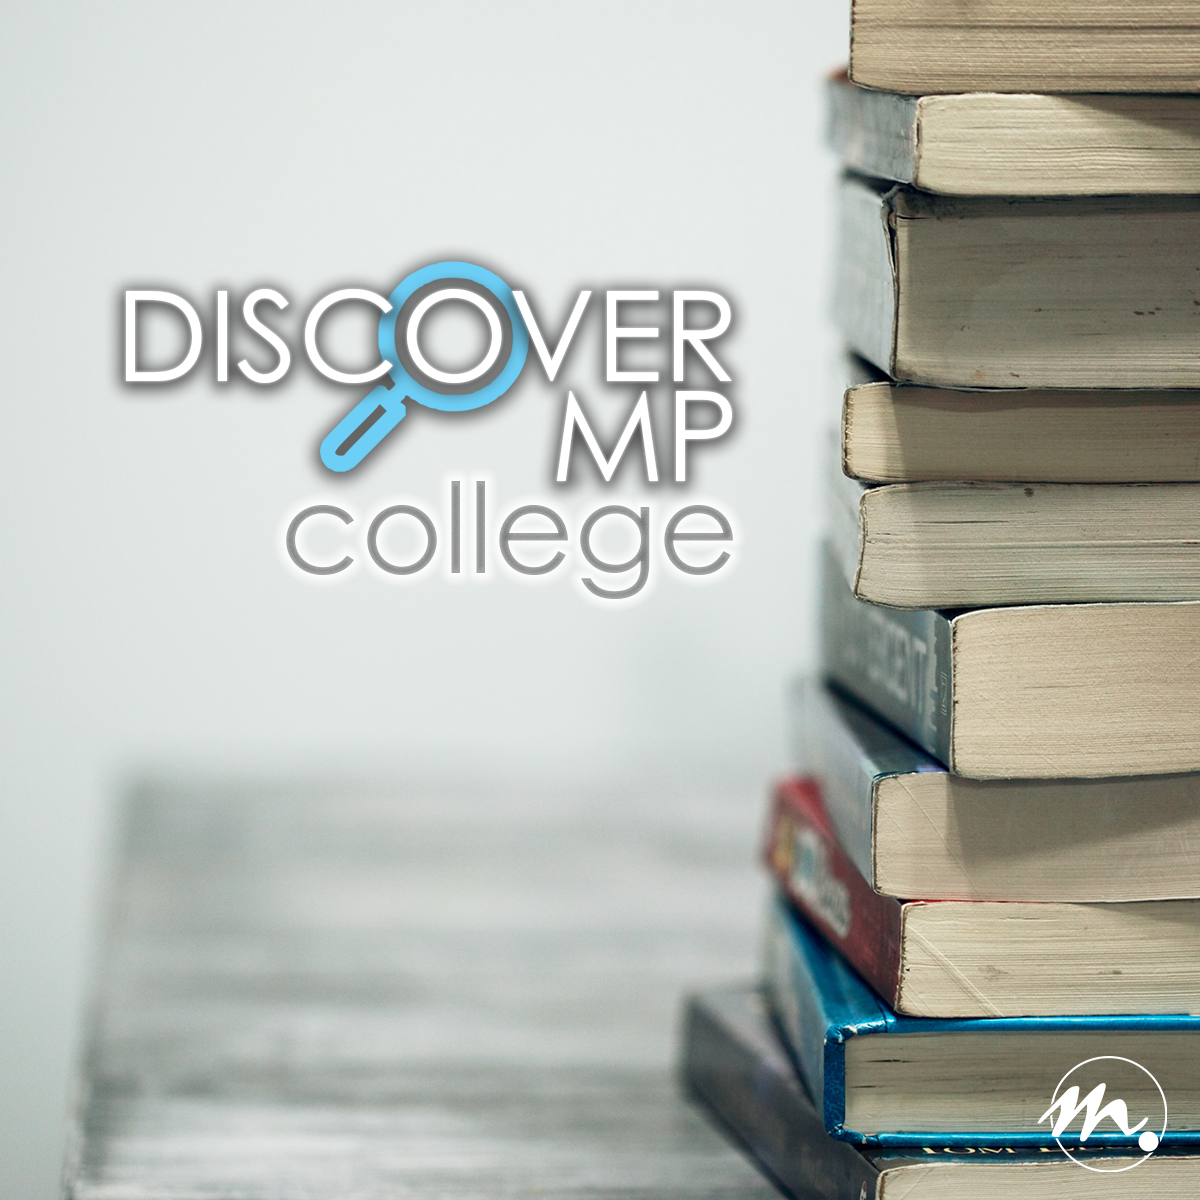 Discover MP - College Students!